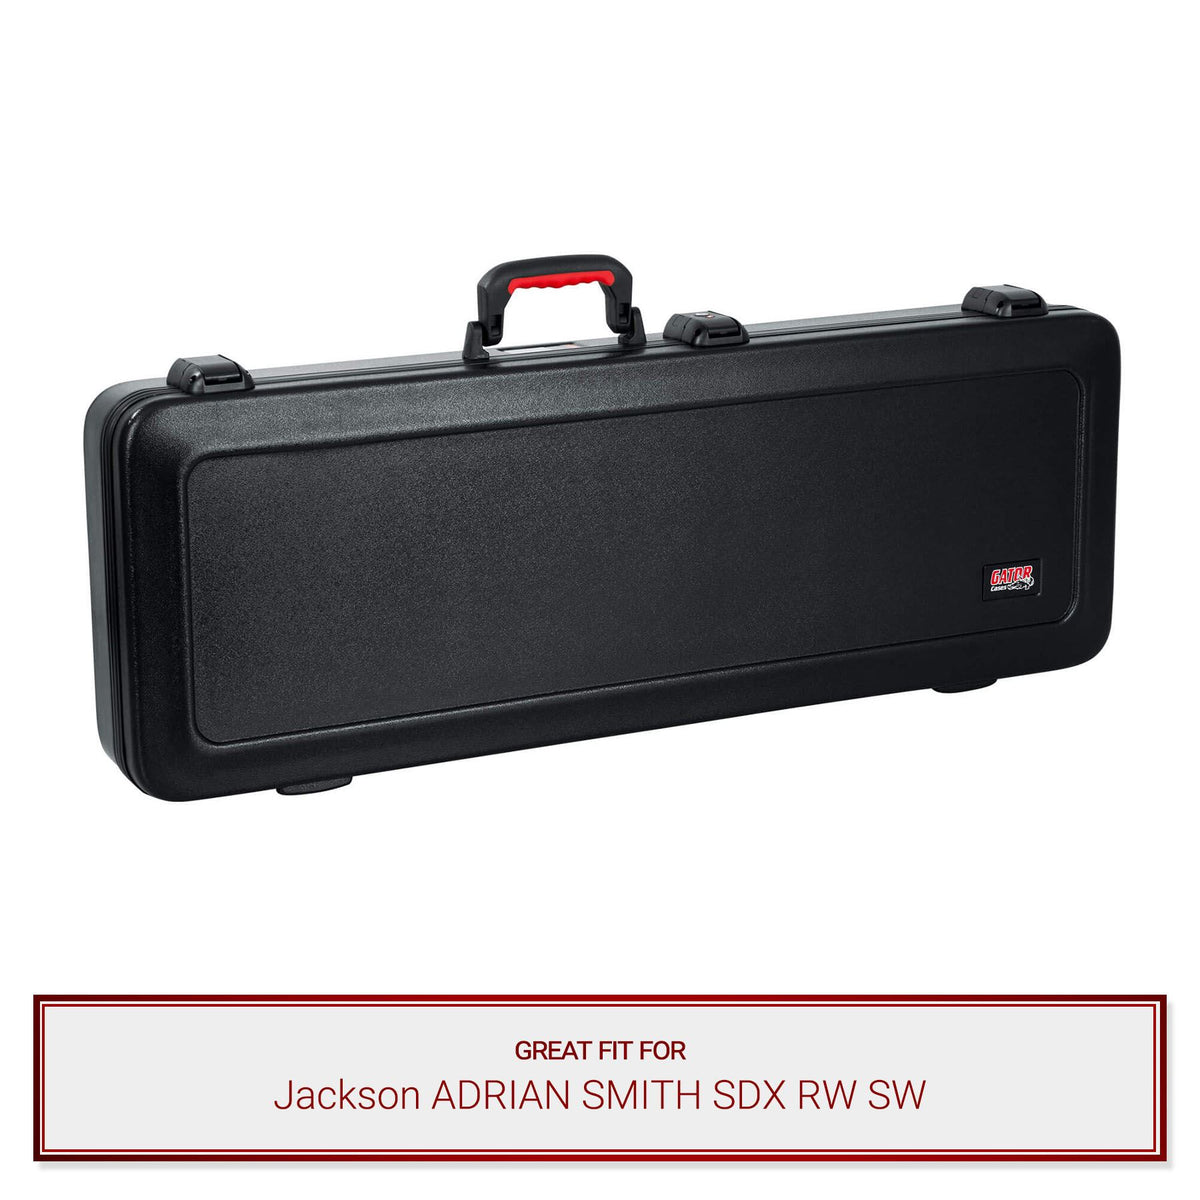 Gator TSA Electric Case fits Jackson ADRIAN SMITH SDX RW SW